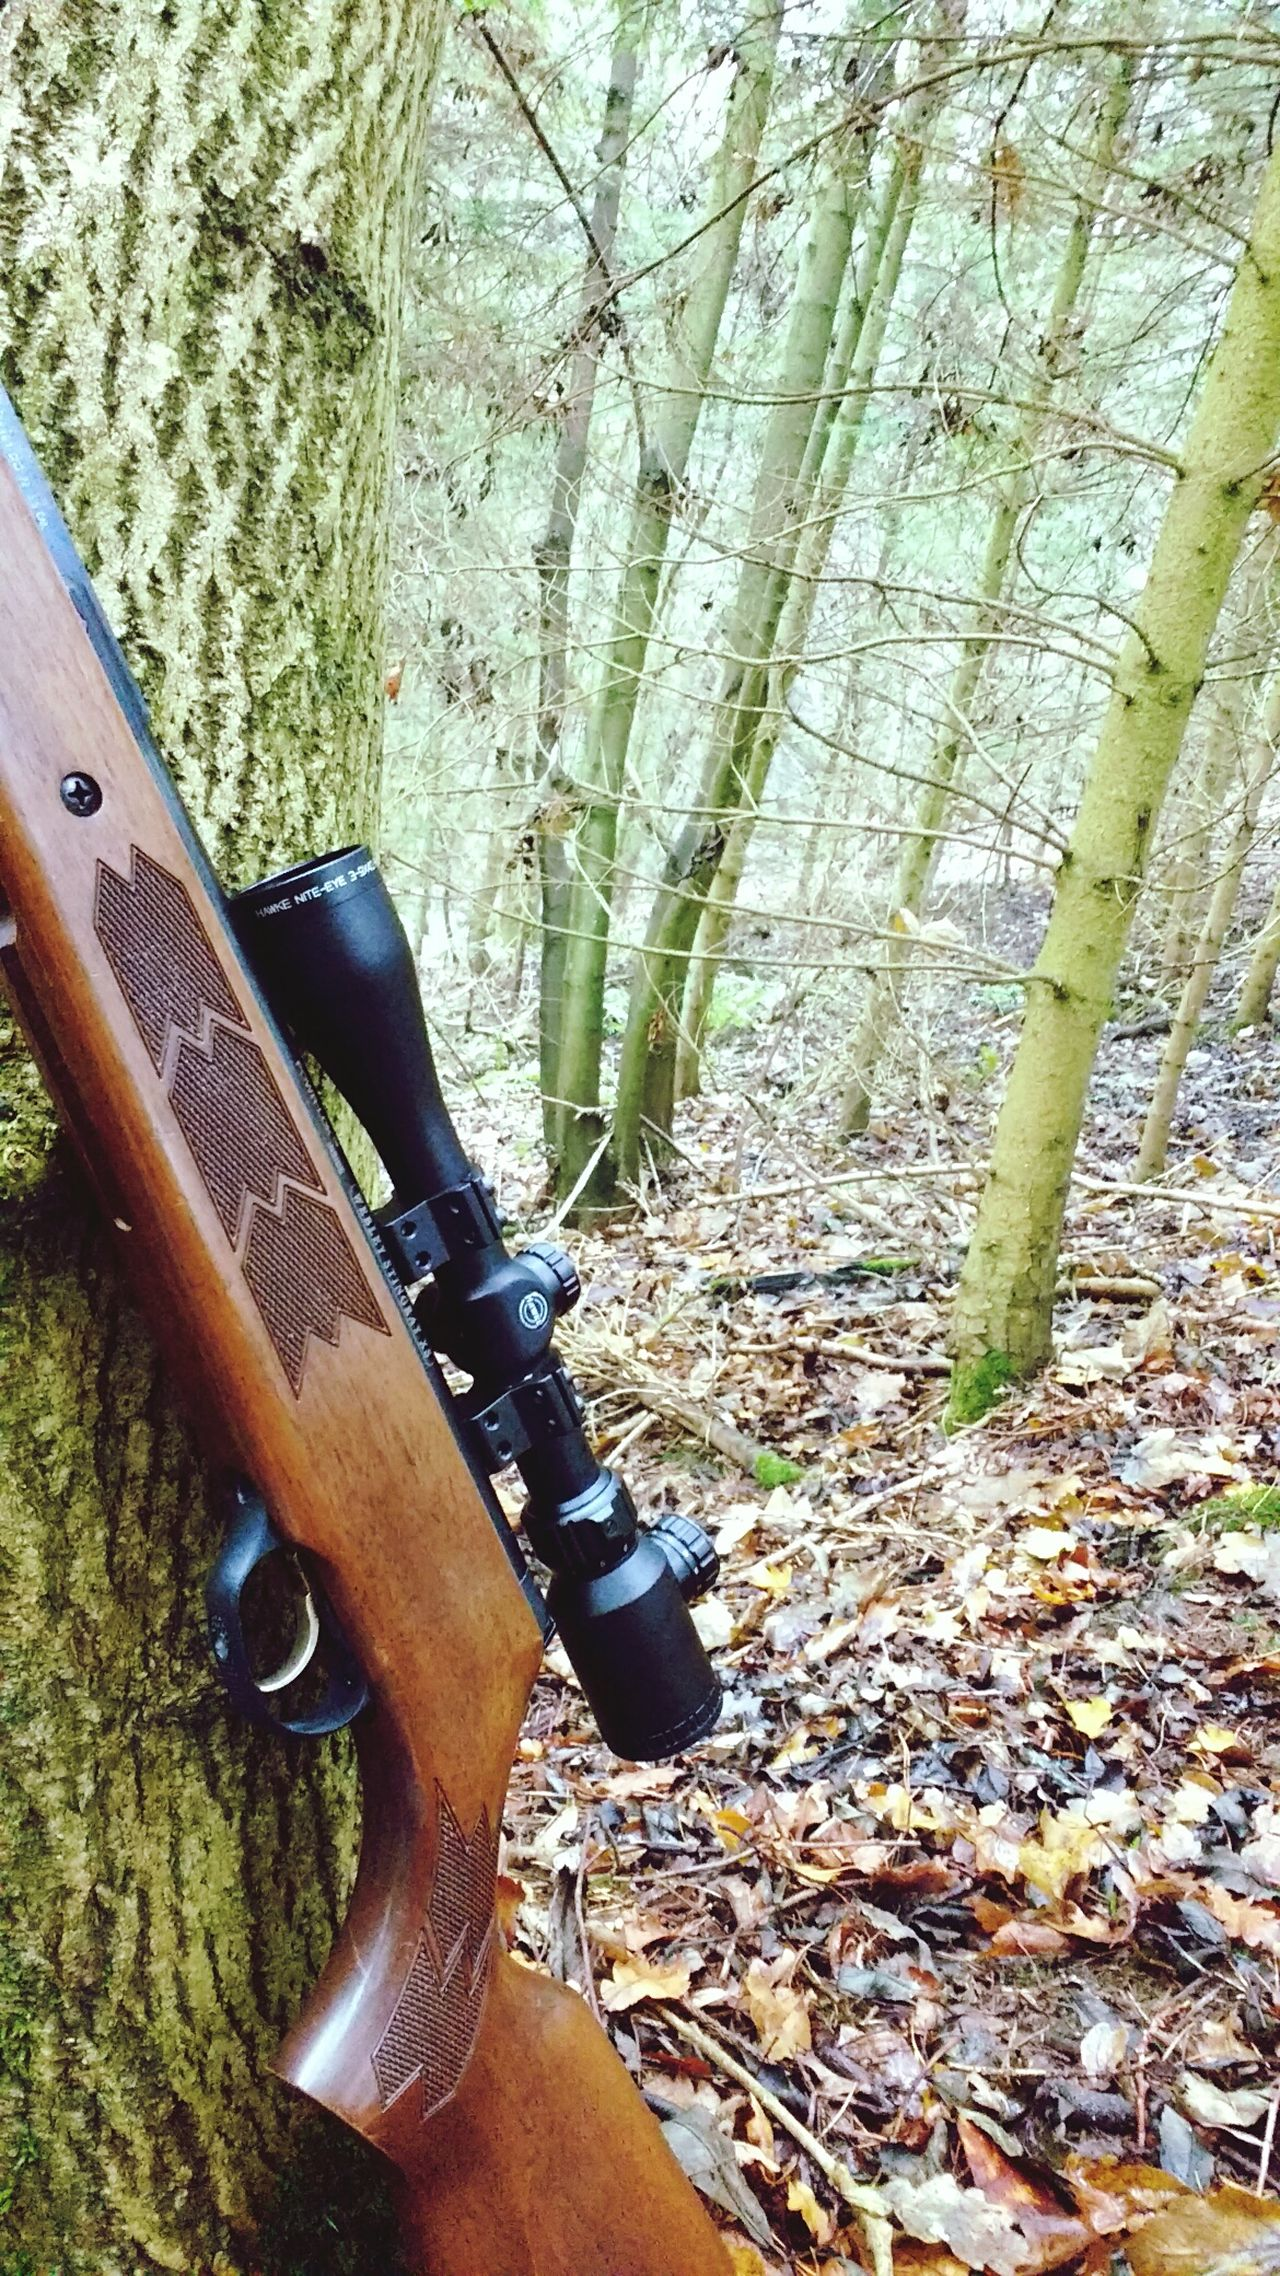 Rifle Airgun Forest Hunting Natural Forest Nature No People Rustic WoodLand Wood Moss Leaves Foraging Autumn